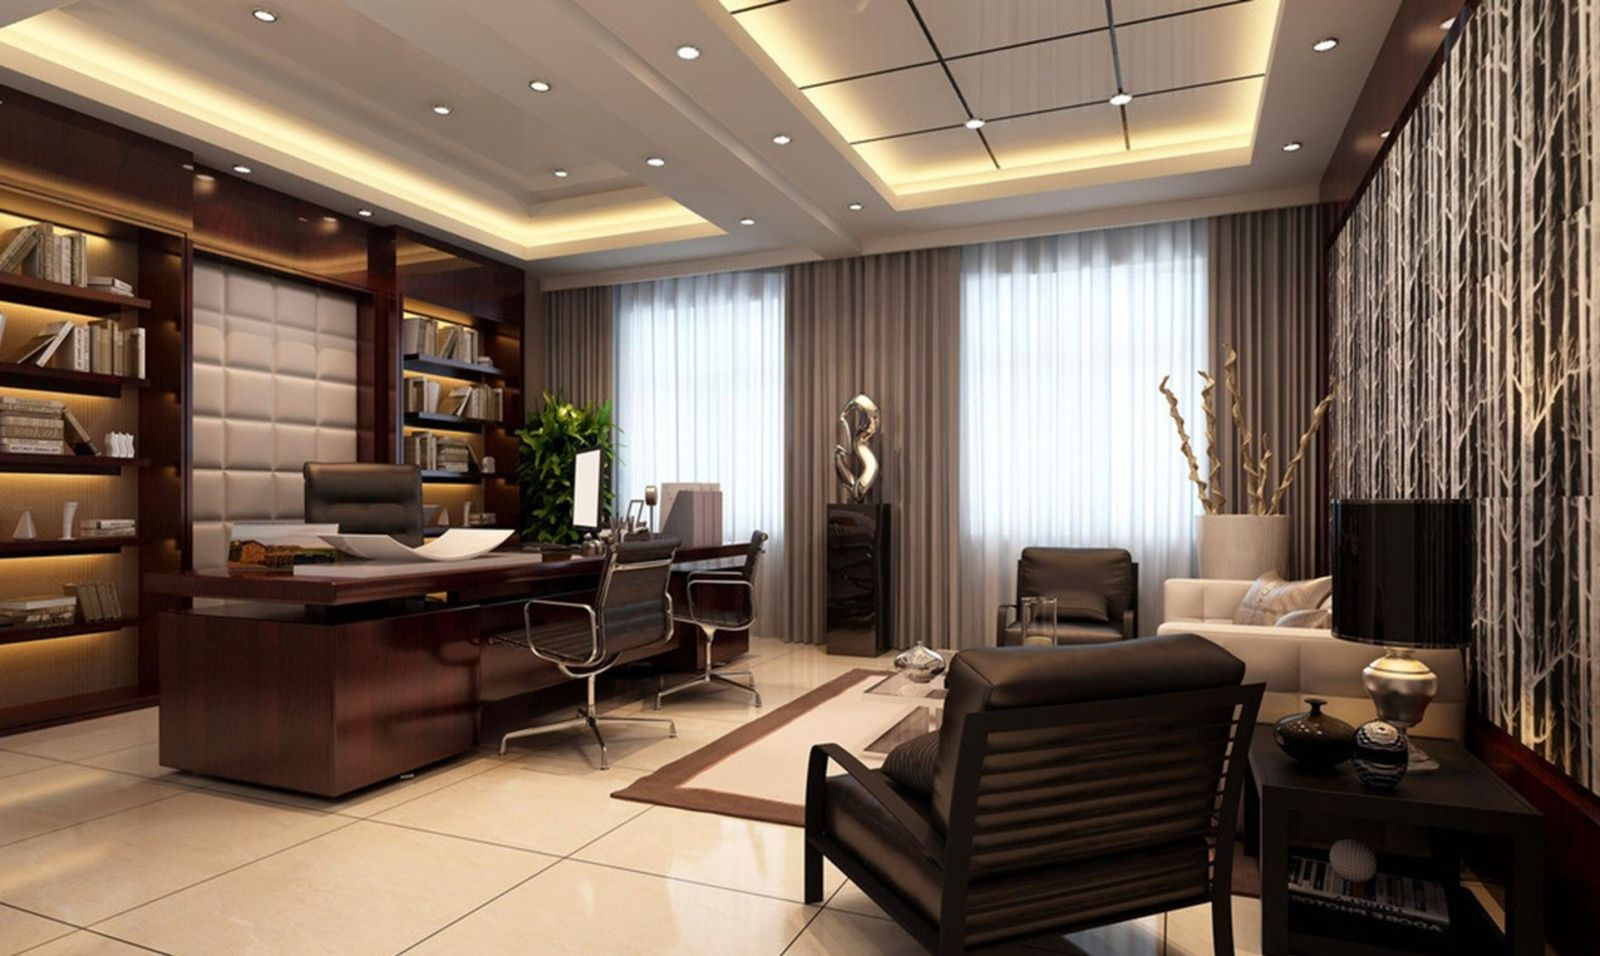 Modern ceo office interior design with executive office for Interior designs of offices